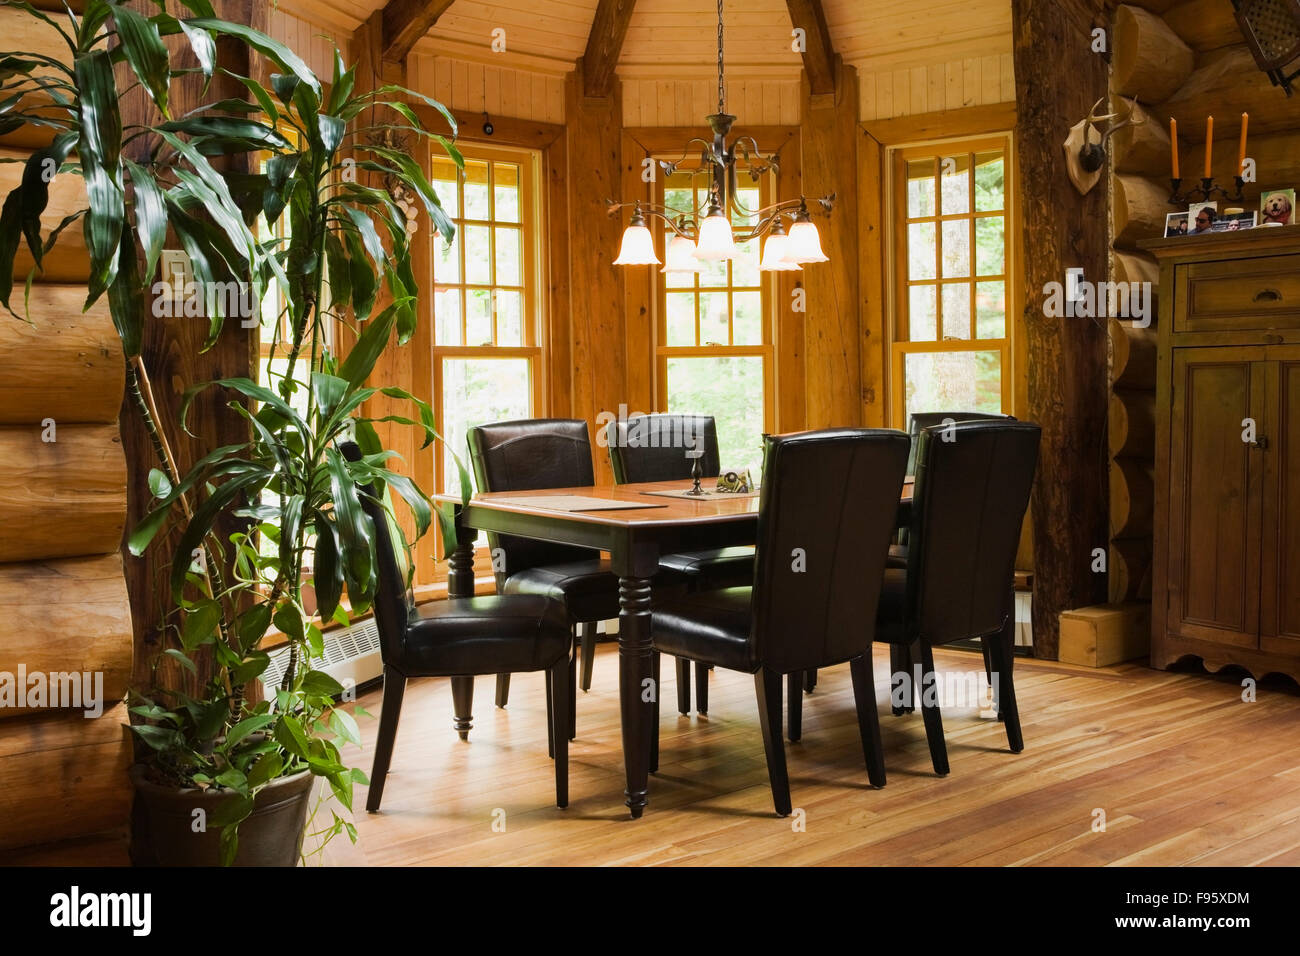 Wooden Dining Table With Leather Chairs In The Room Inside A 2003 Built Cottage Style Residential Log Home Quebec